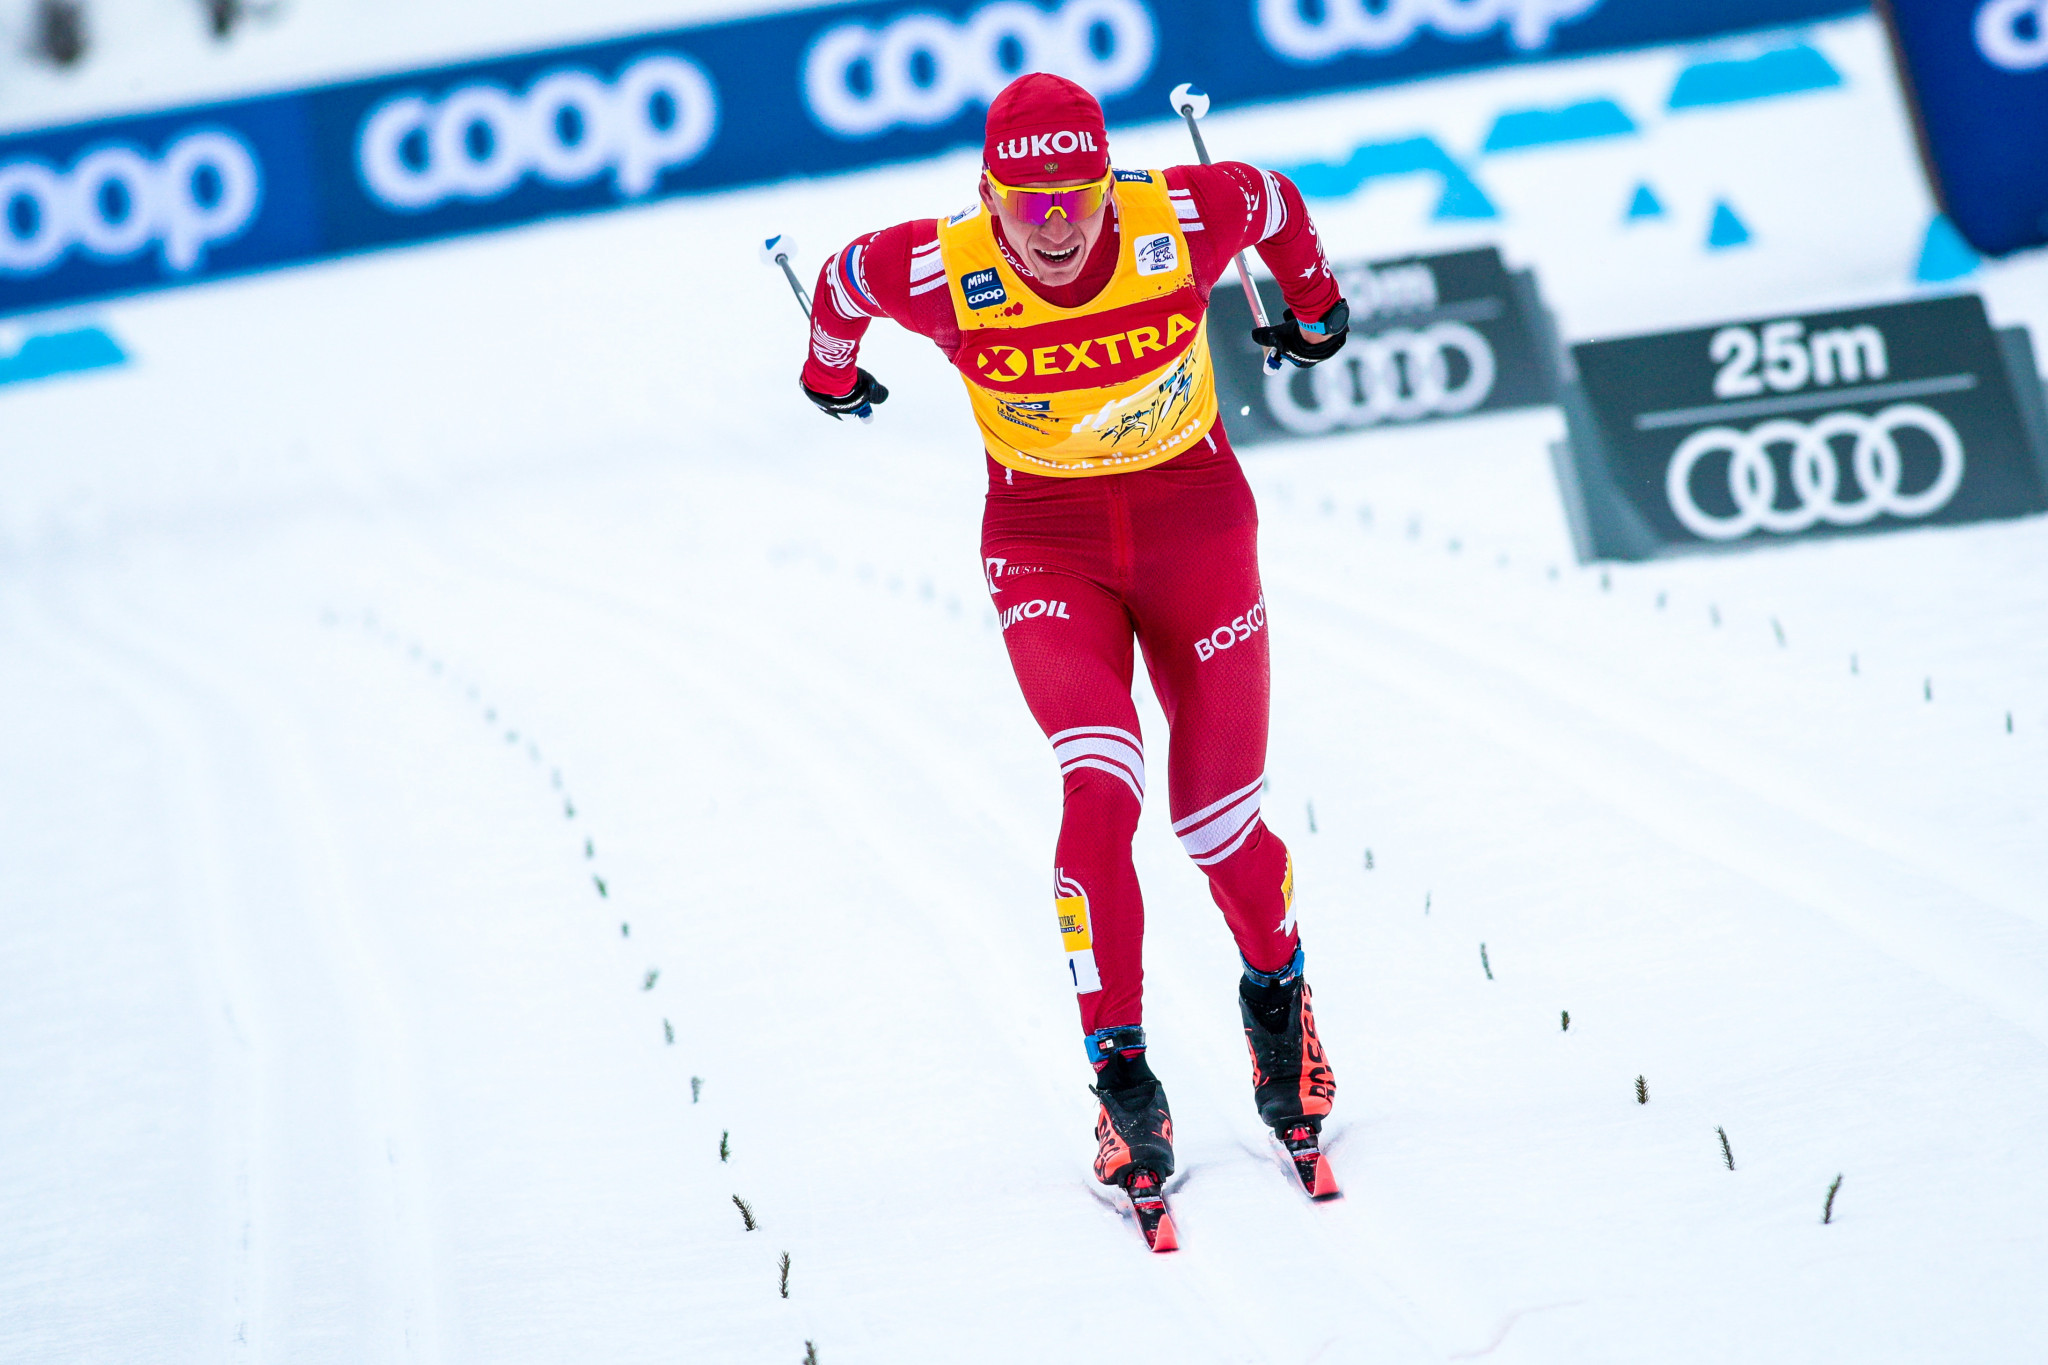 Dominant Bolshunov sweeps to fourth straight FIS Tour de Ski win on strong day for Russia